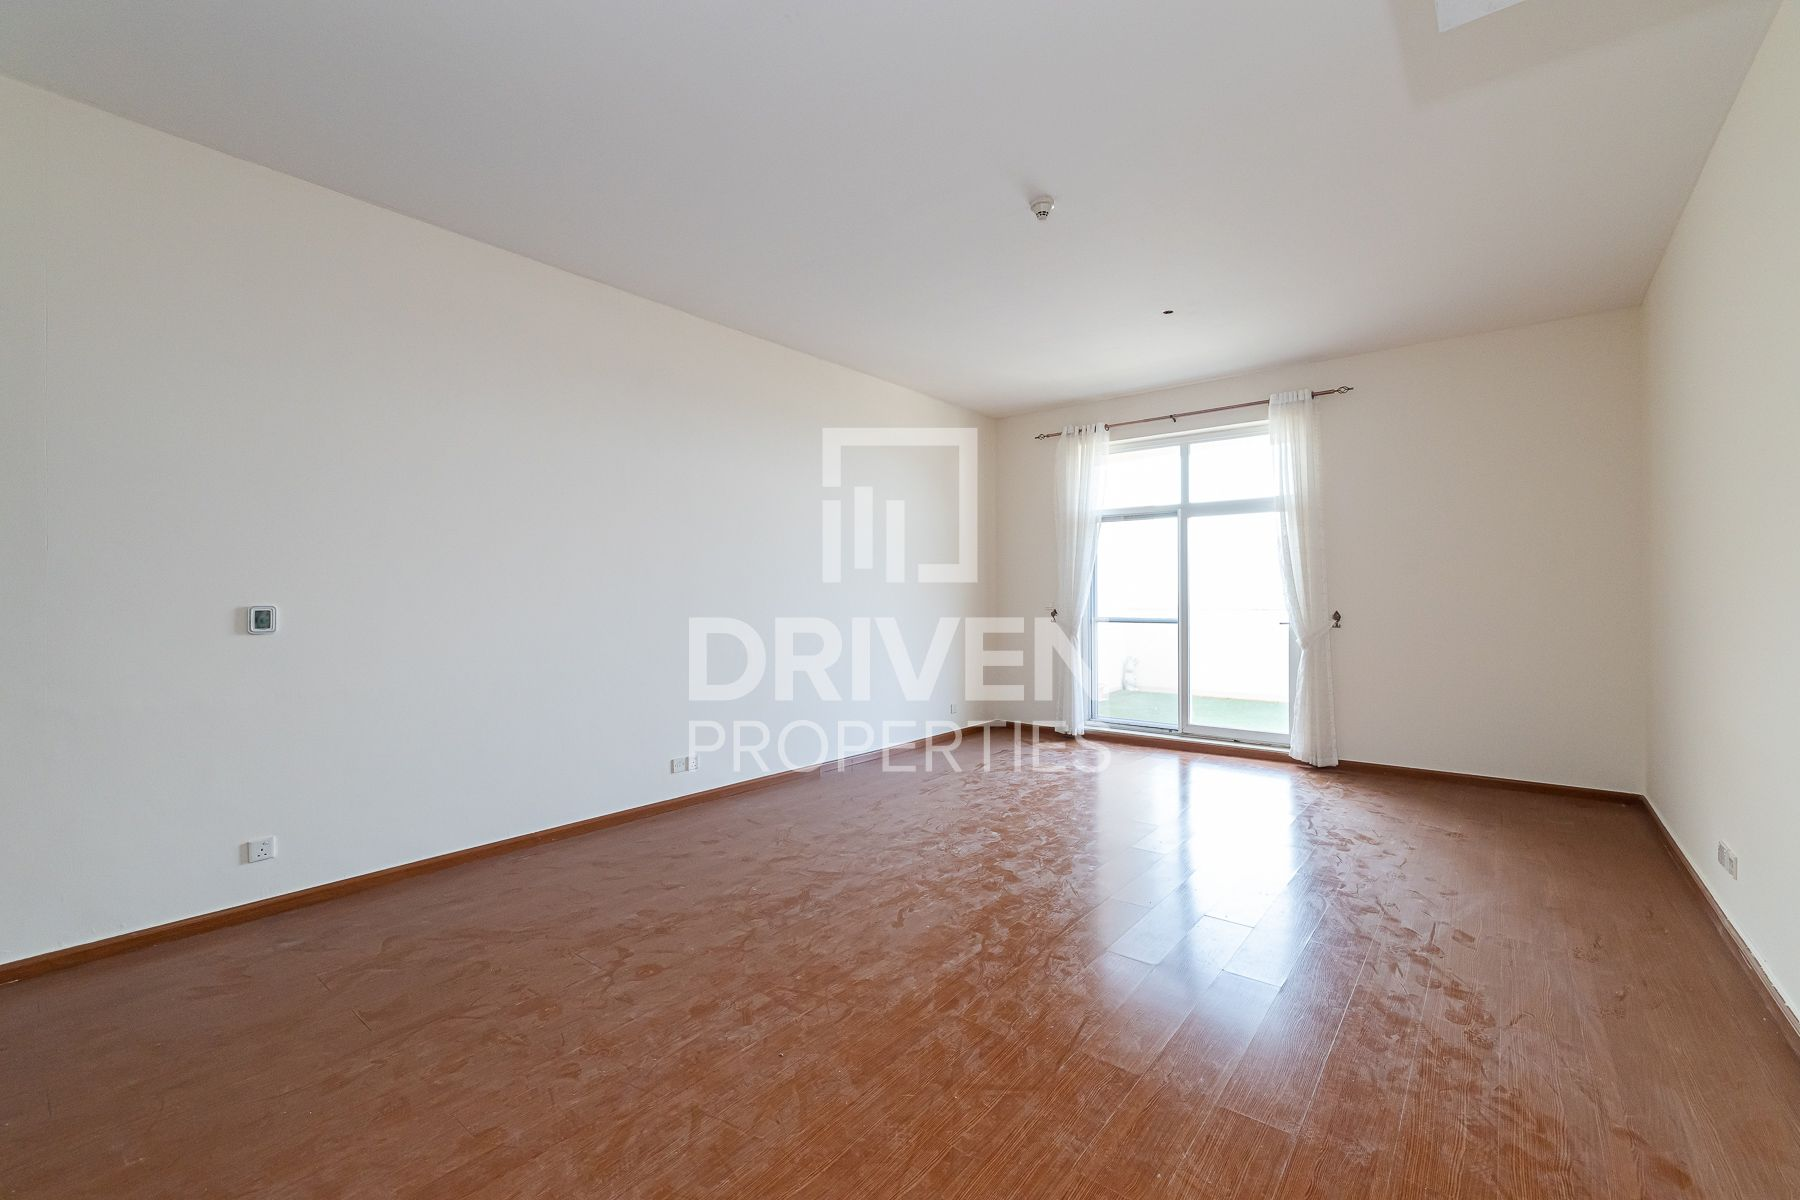 Huge and Upgraded 3 Bedroom Apt in Foxhill